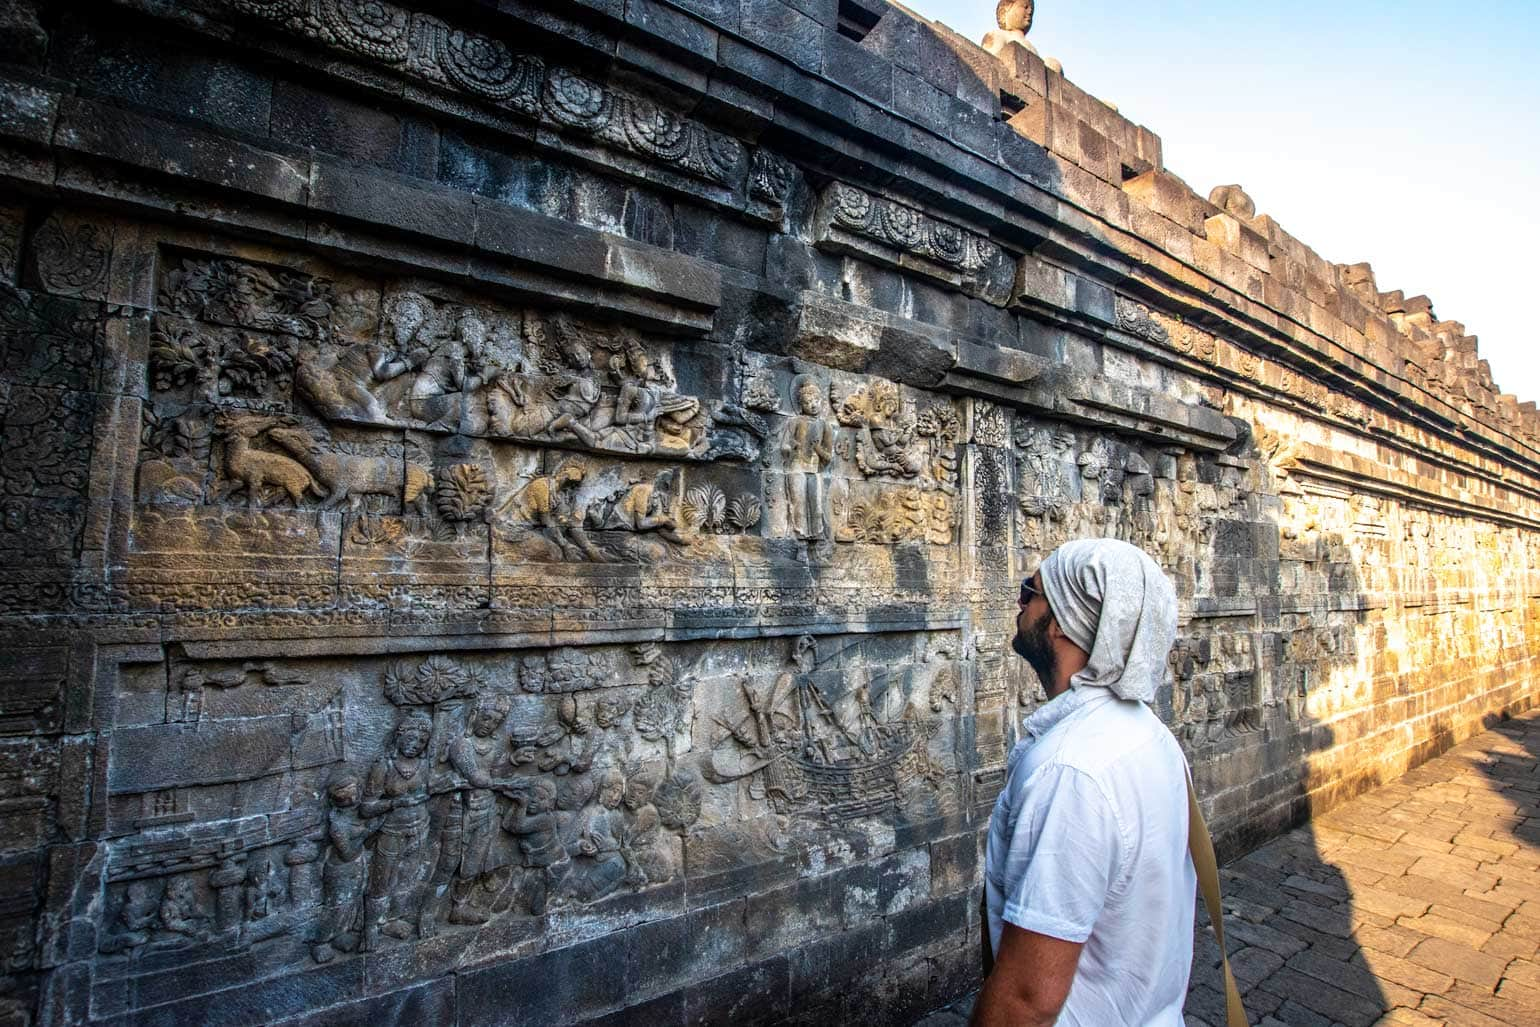 enjoying the art of borobudur at sunrise